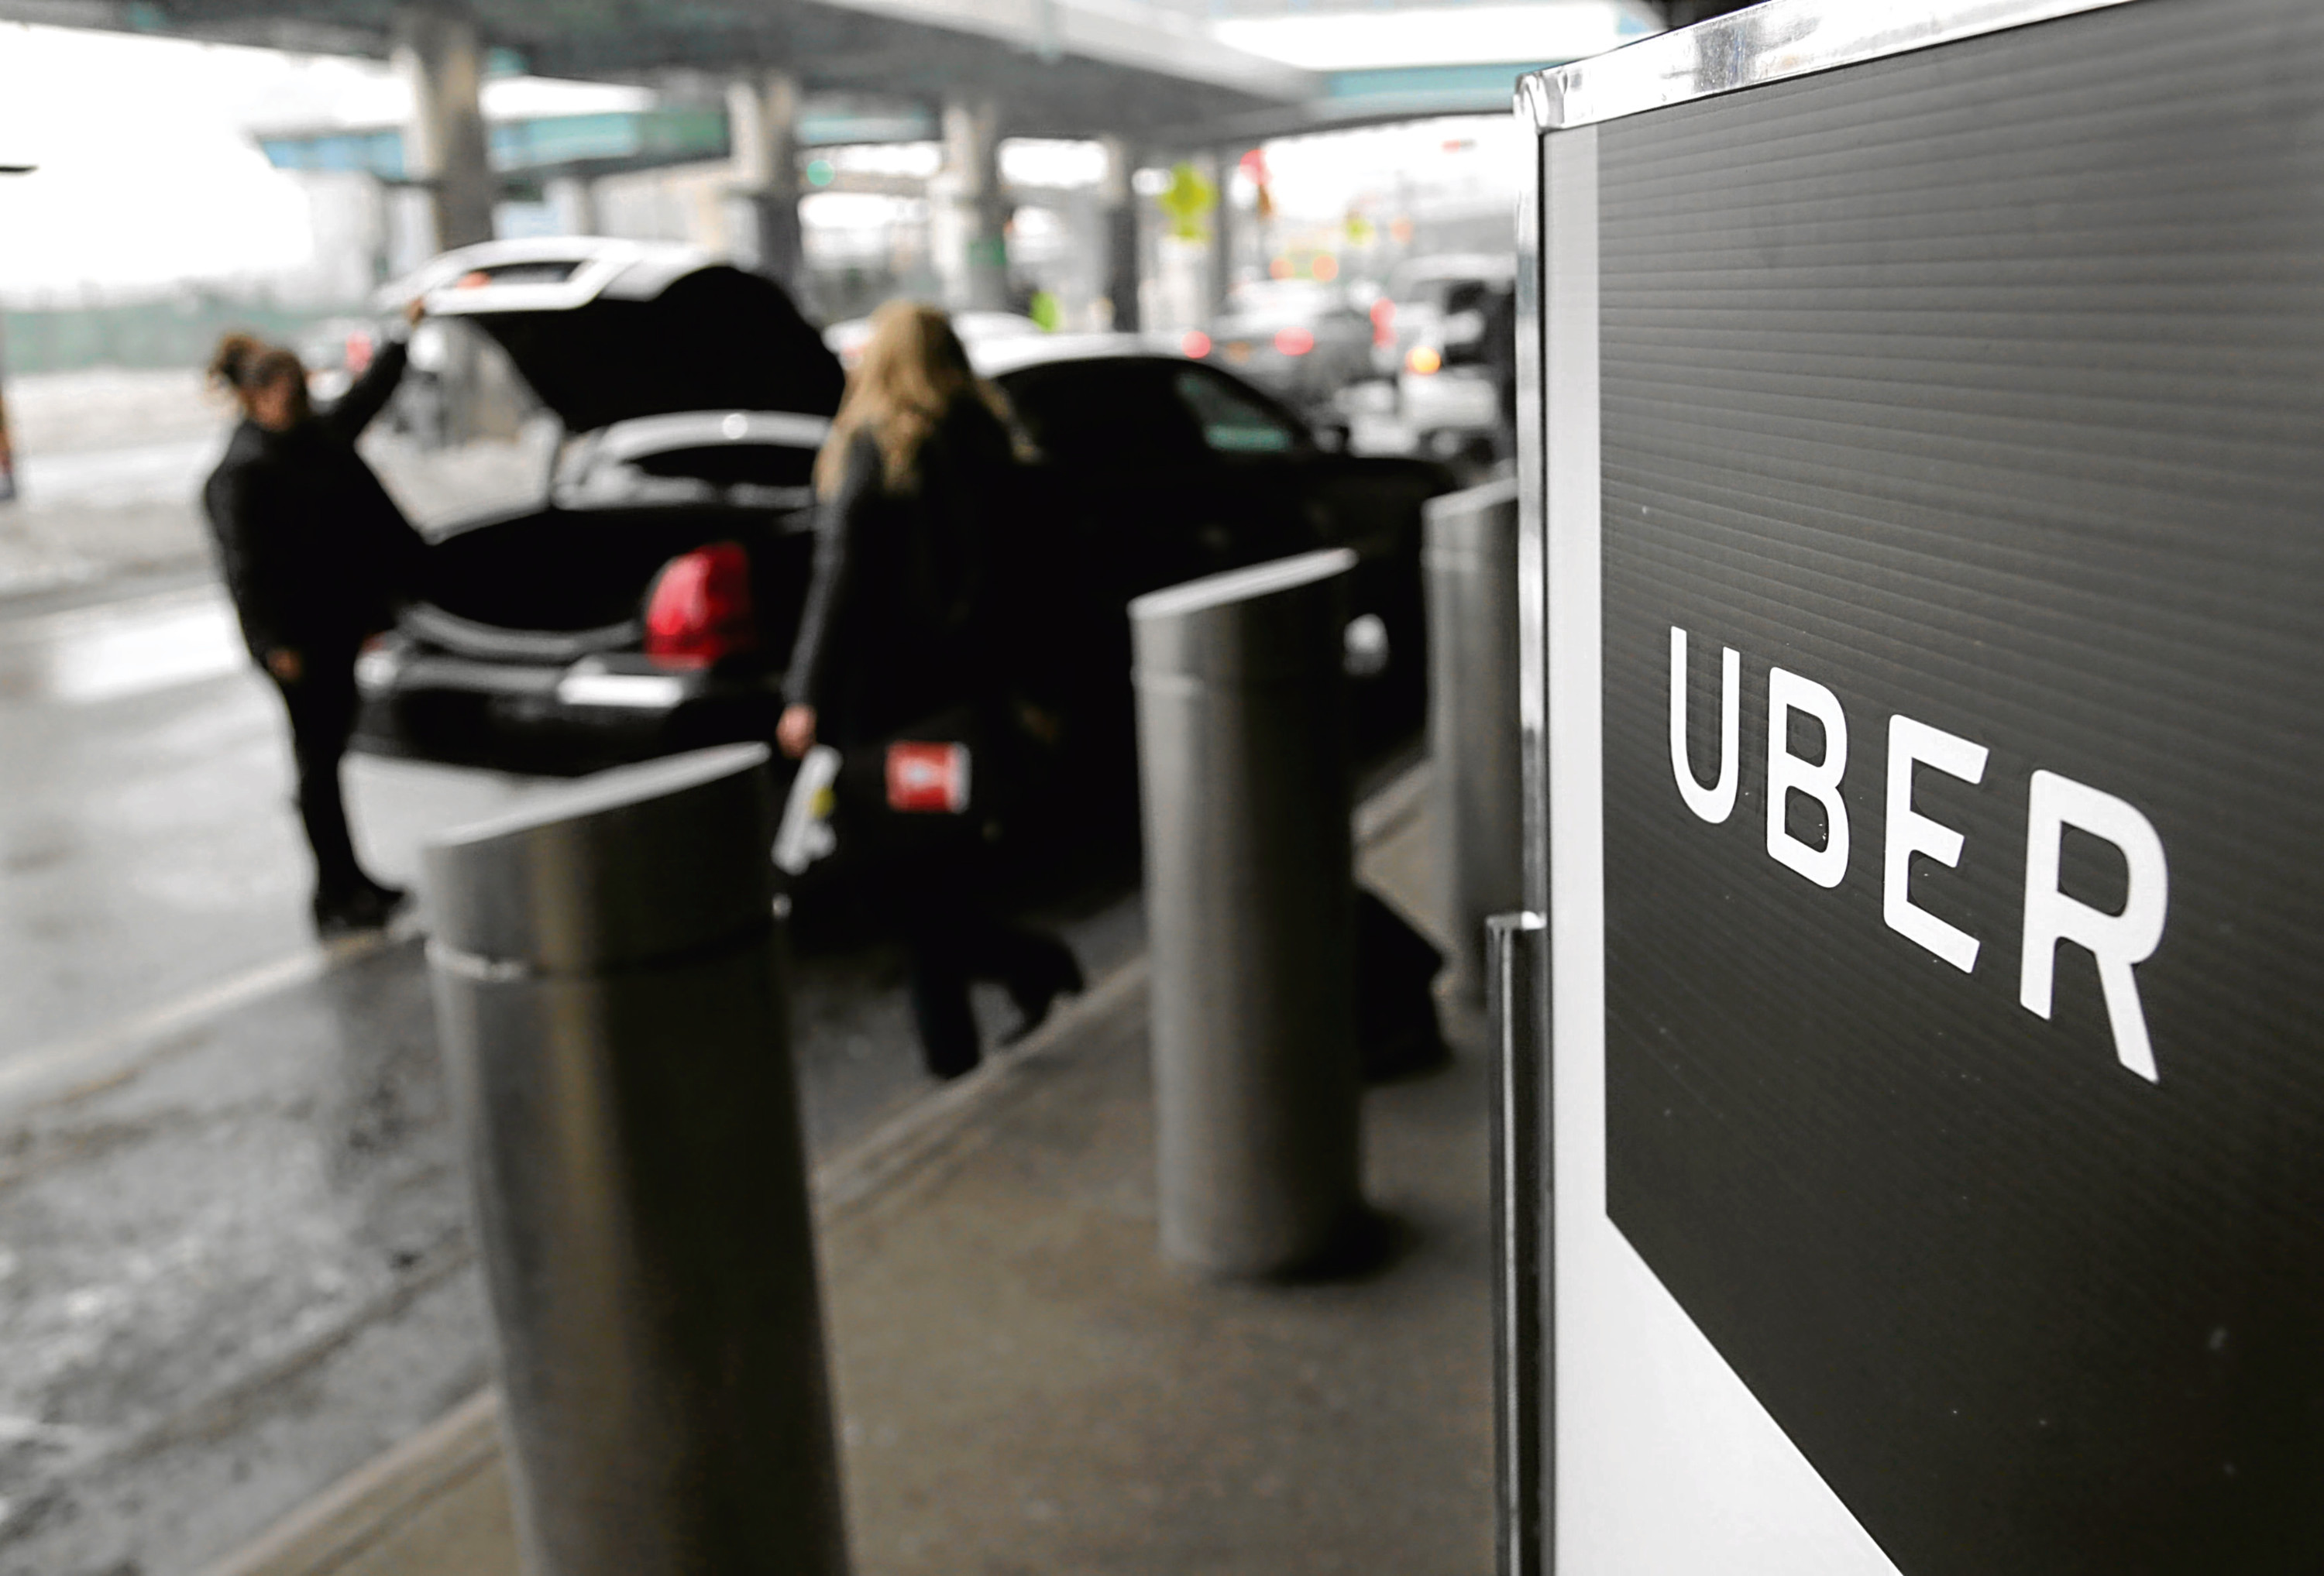 Uber has been granted a licence to operate in Aberdeen.